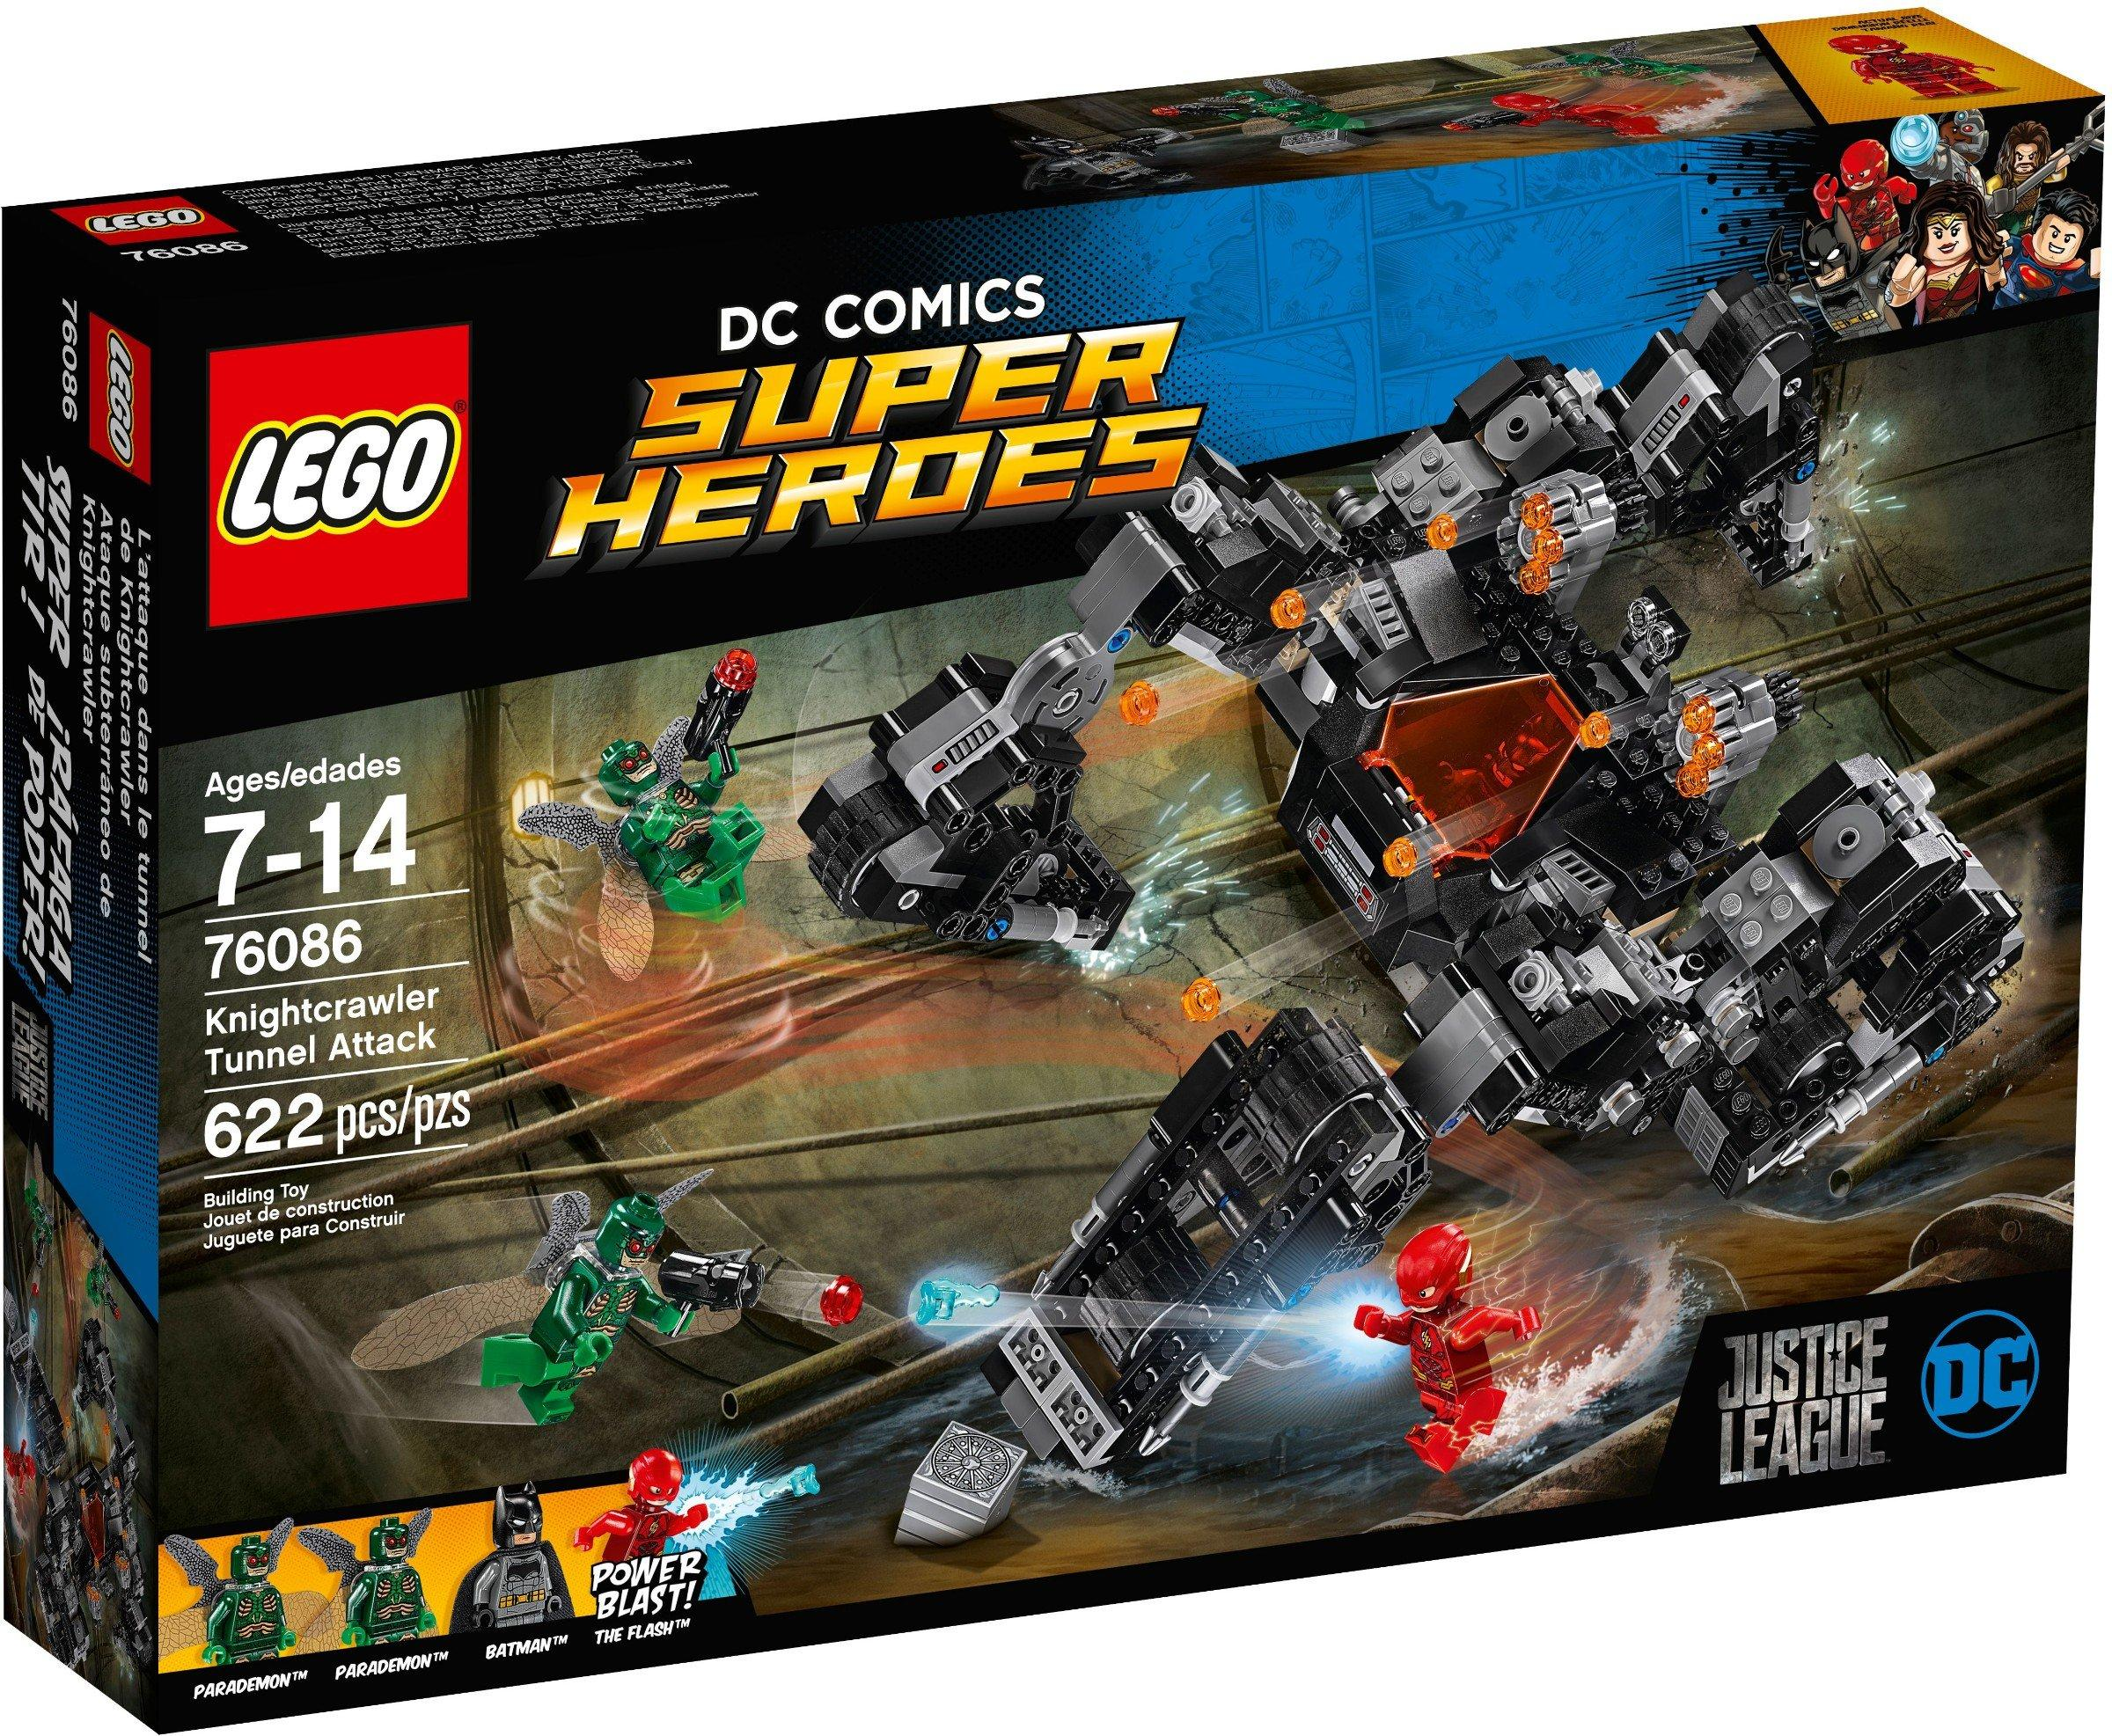 Lego Super Heroes Knightcrawler Tunnel Attack Au7 (76086)